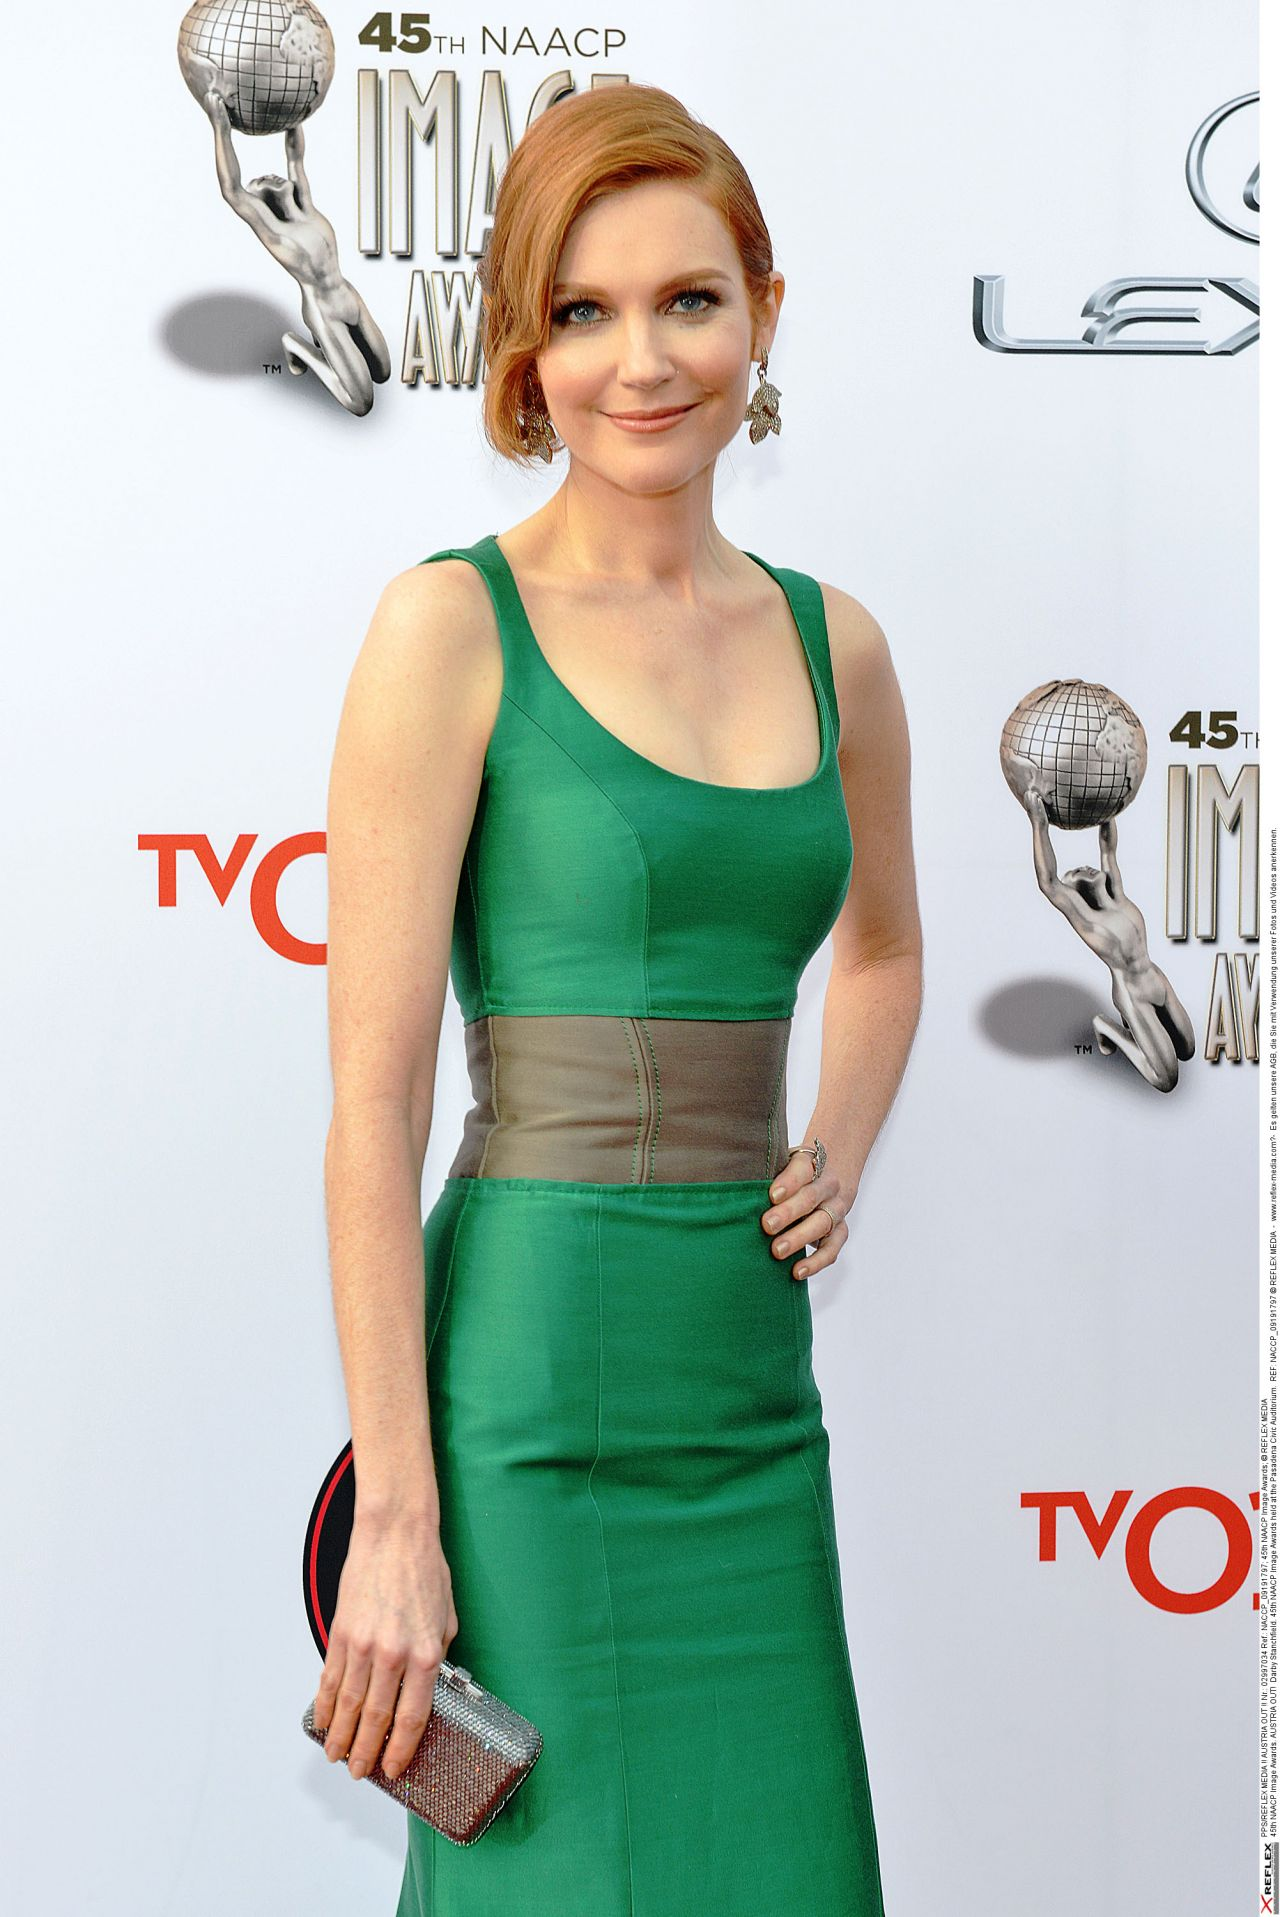 1280x1917 - Darby Stanchfield Wallpapers 4